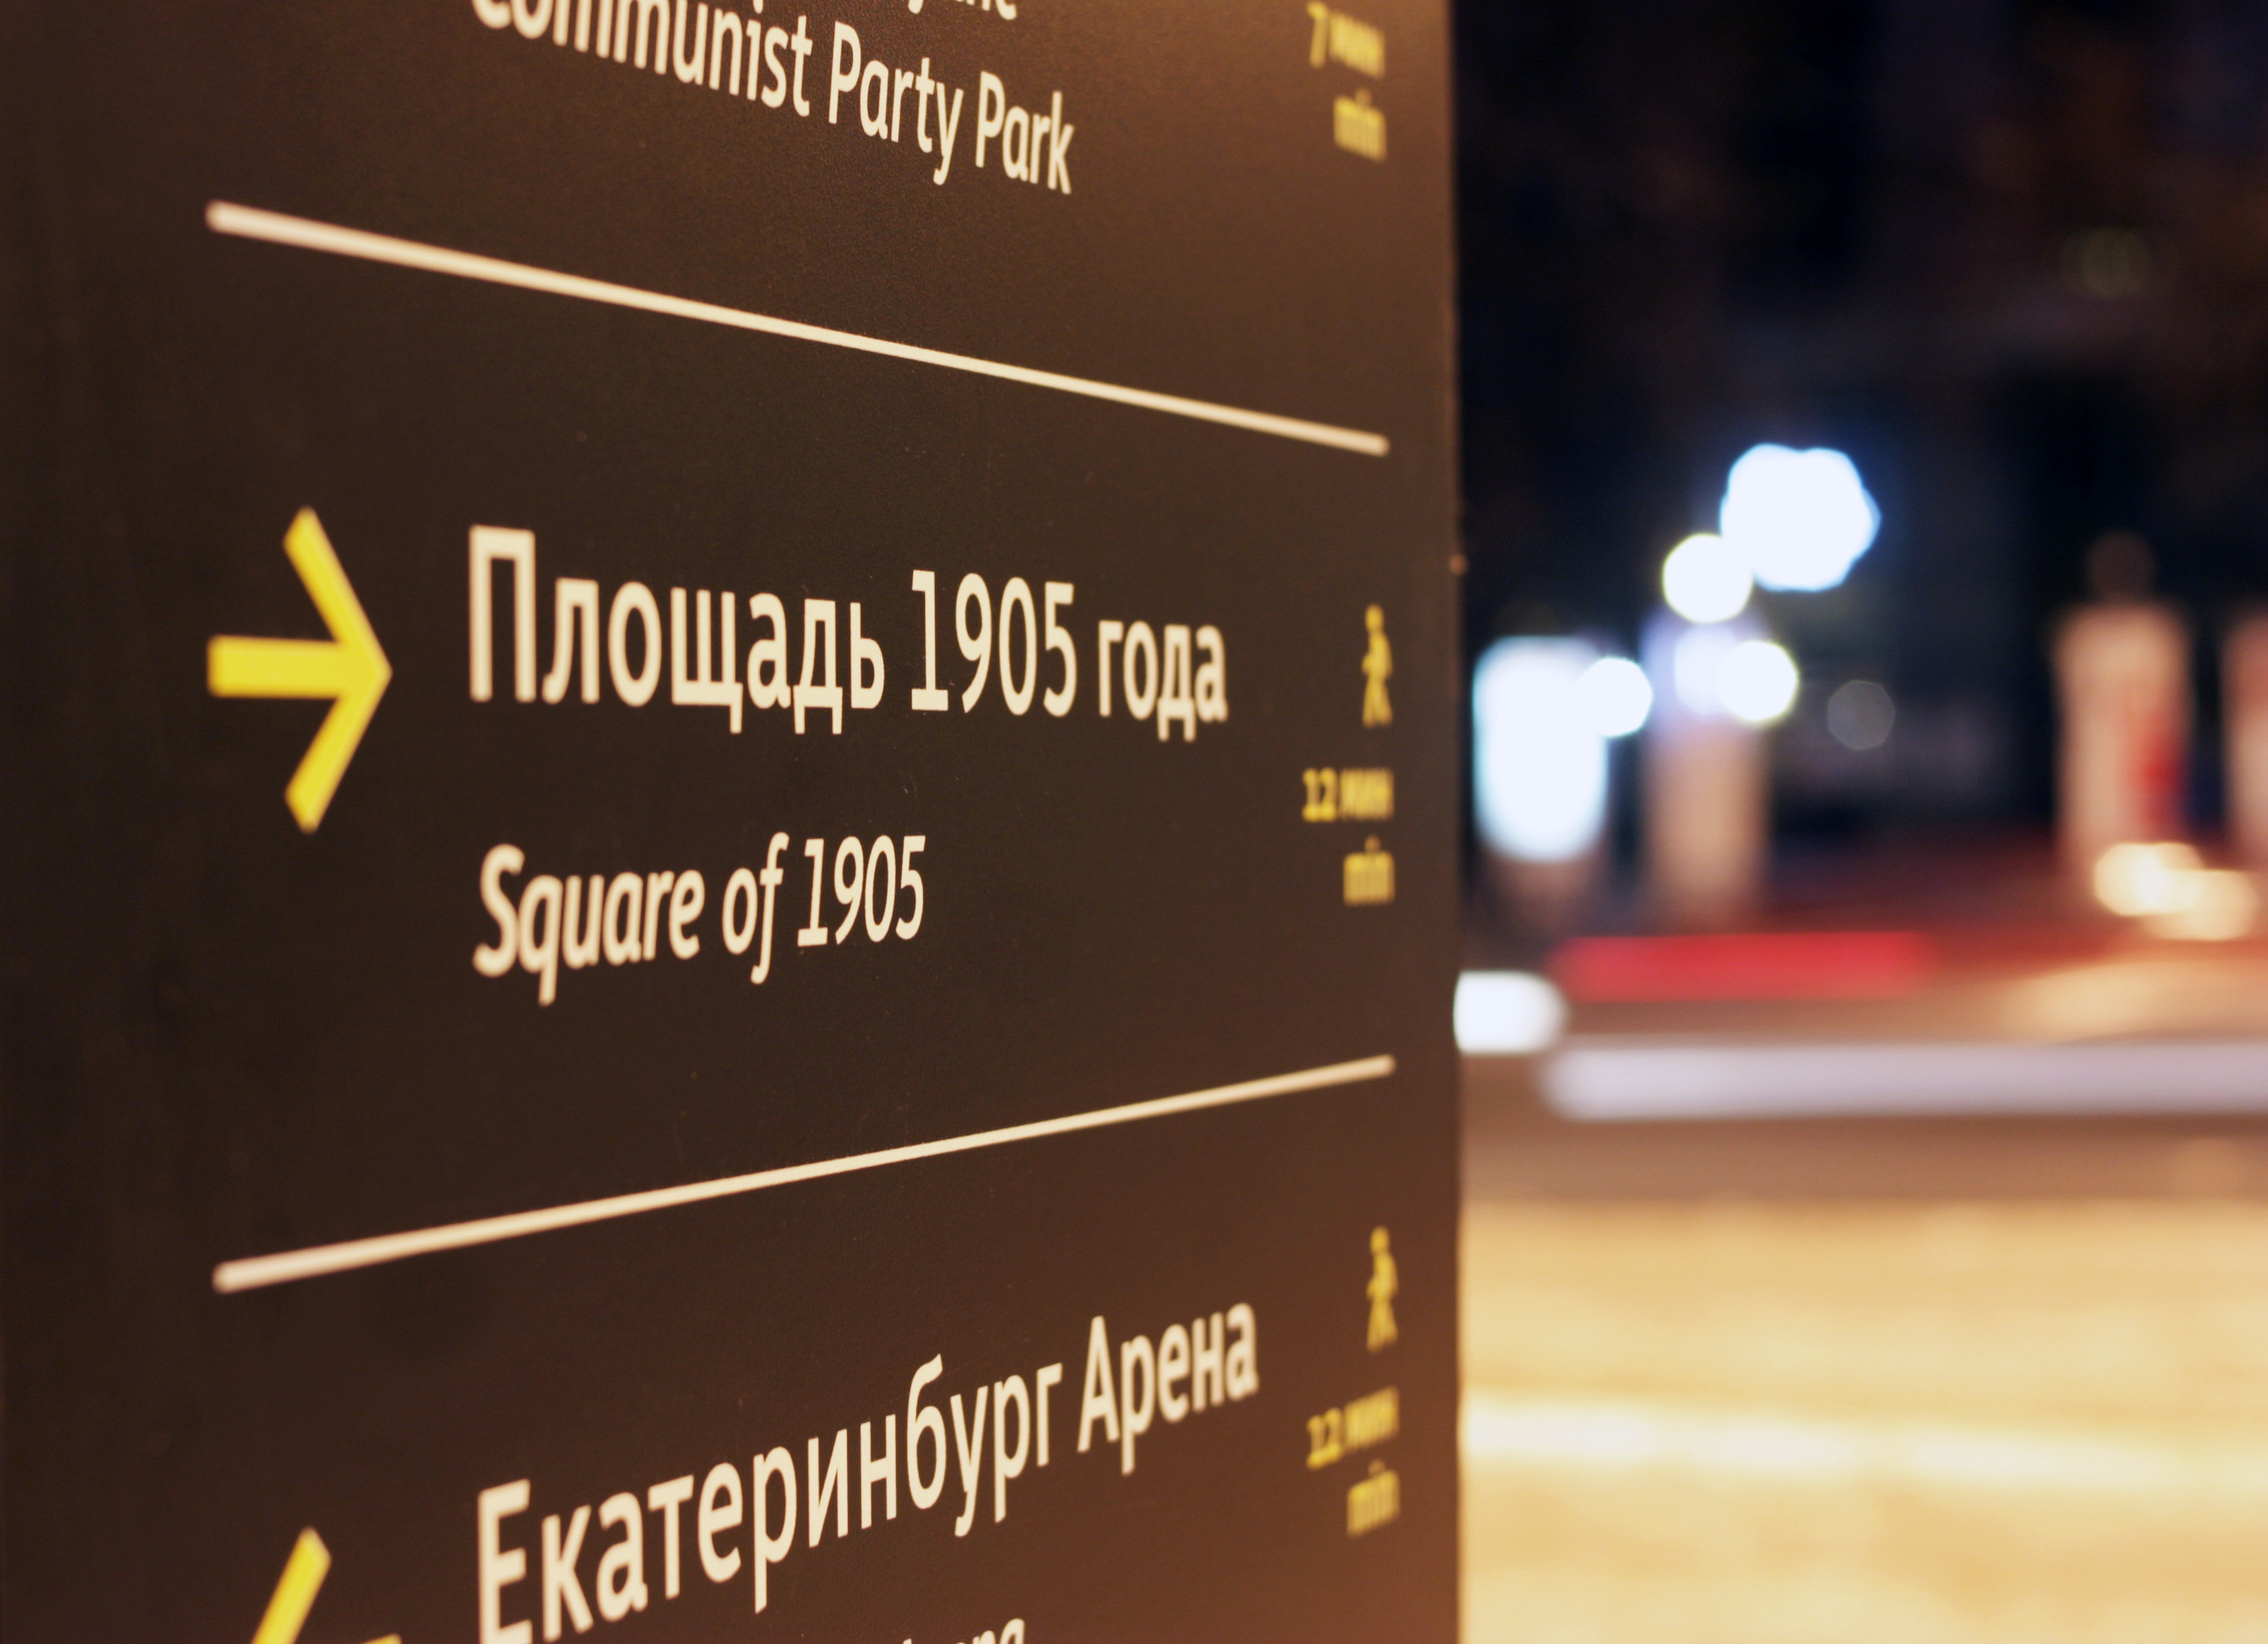 Yekaterinburg Citizens and Guests Appraise Functionality of Shvabe Information Board